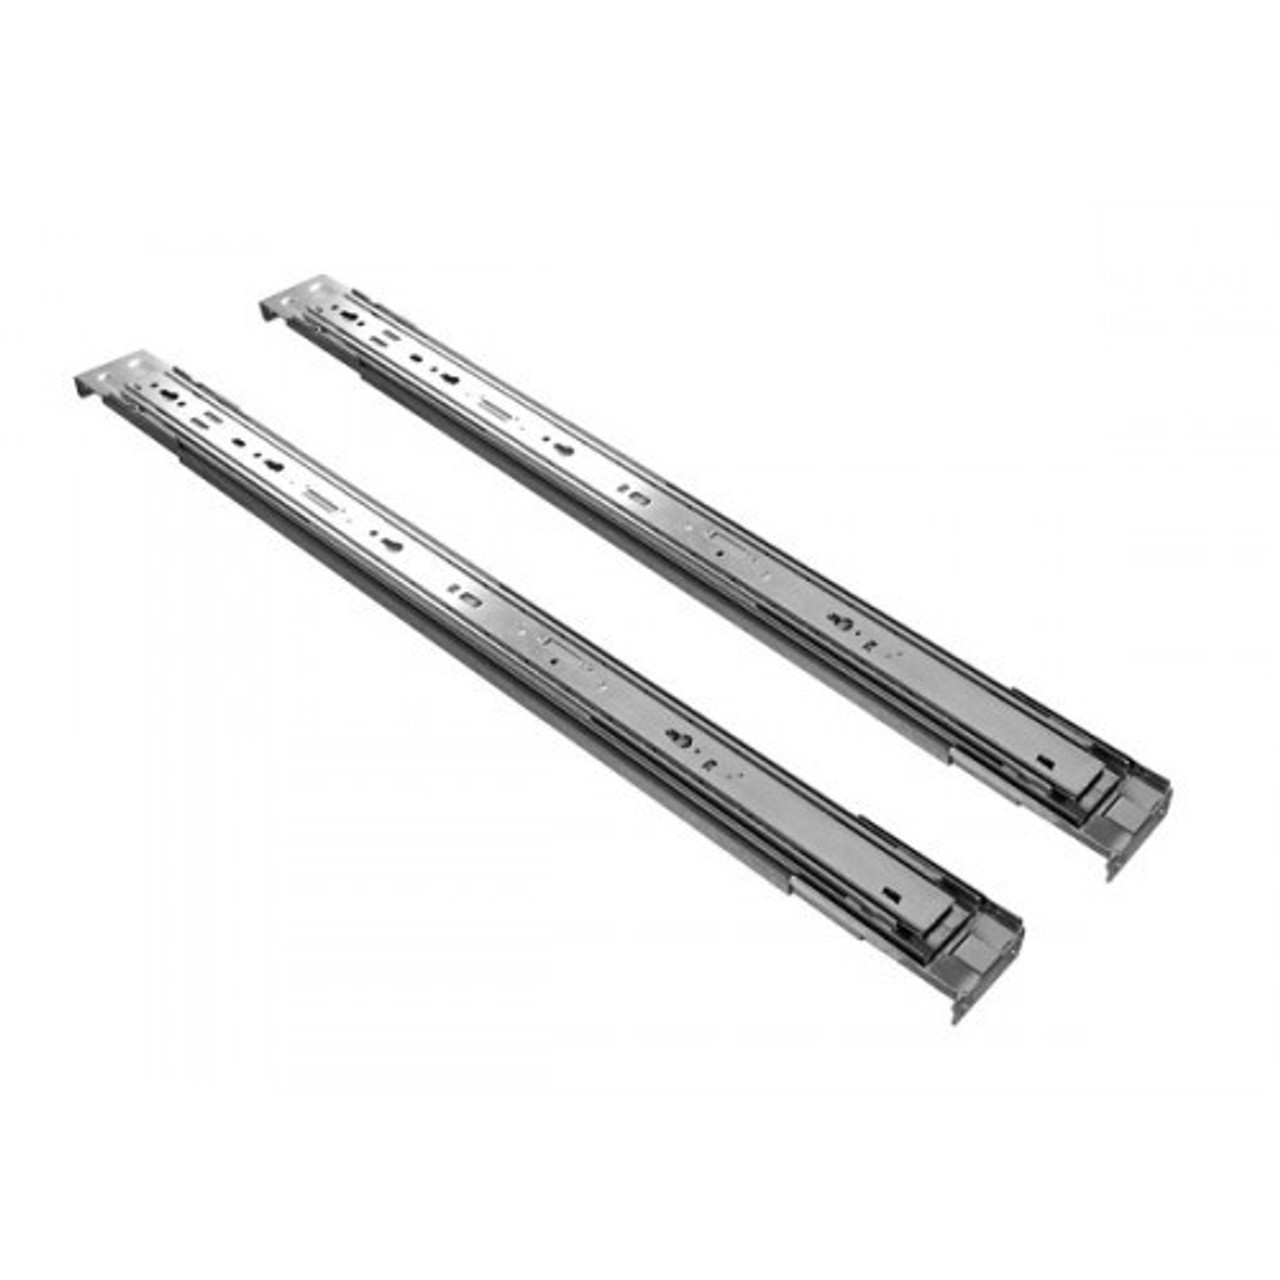 Image for Asustor 92H5-MR0001 Rail Kit for 1U/2U Rack-mountable Systems CX Computer Superstore